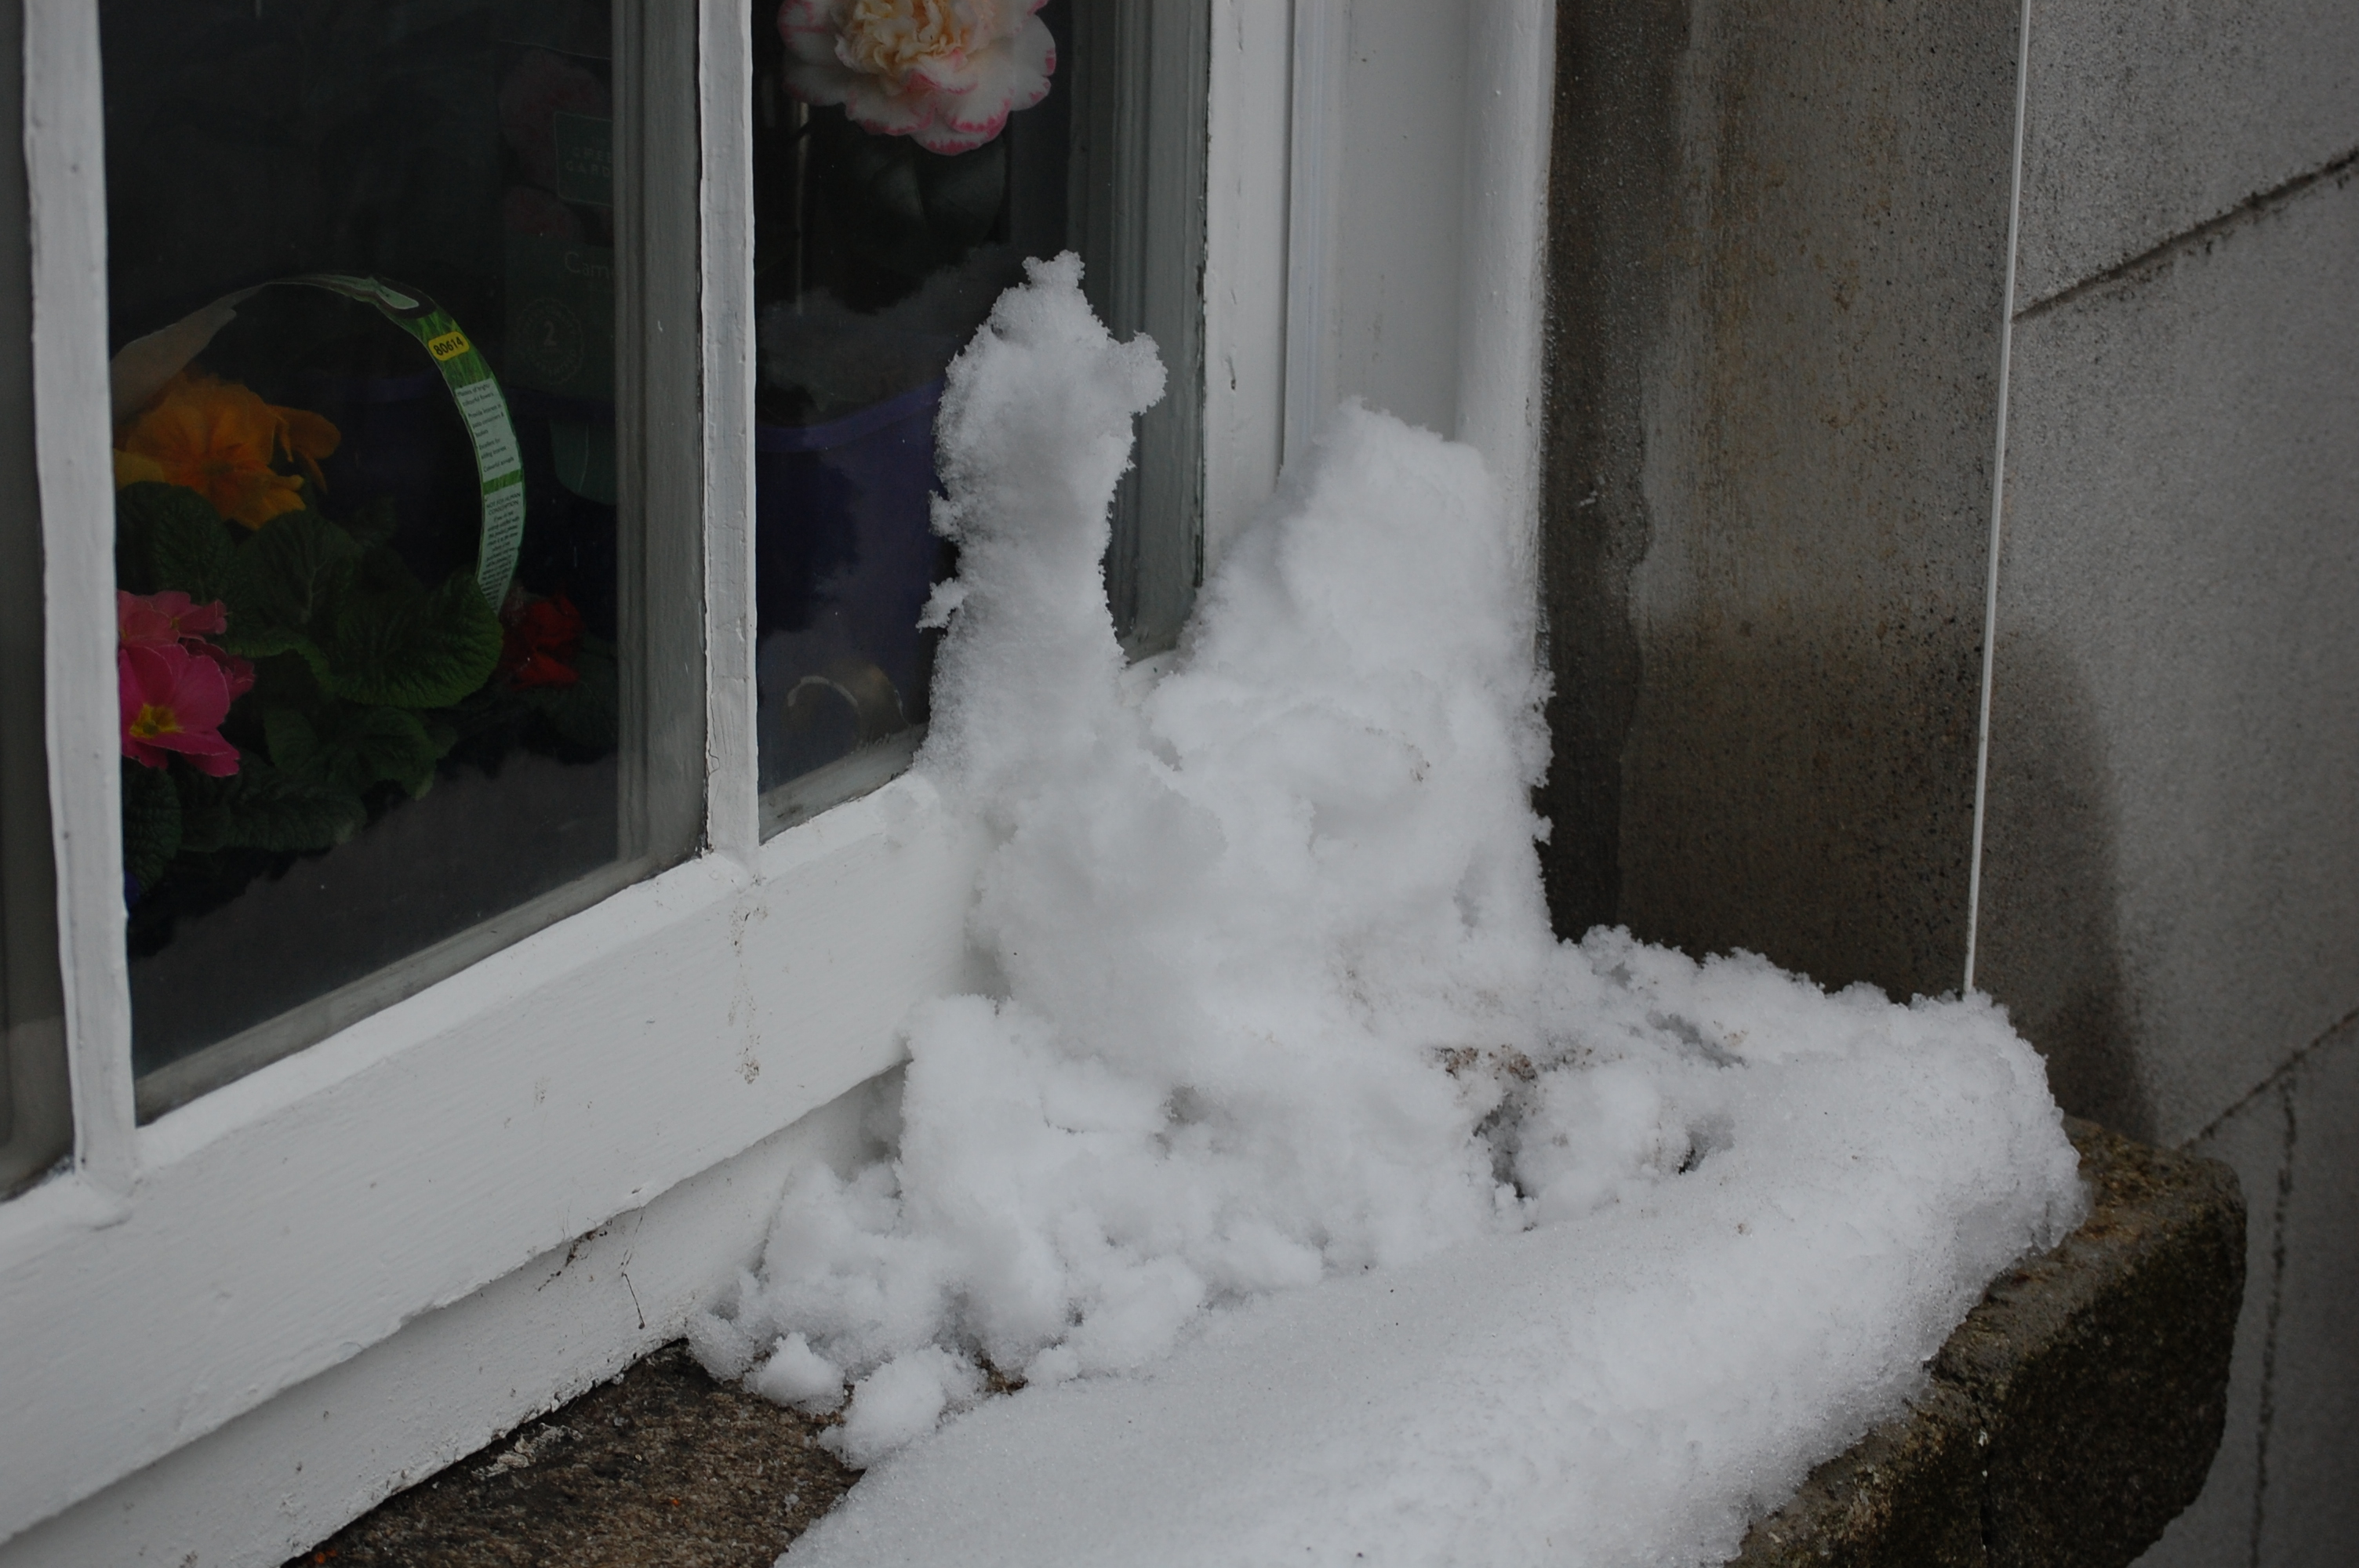 Window frames, mechanisms and seals can be damaged by ice